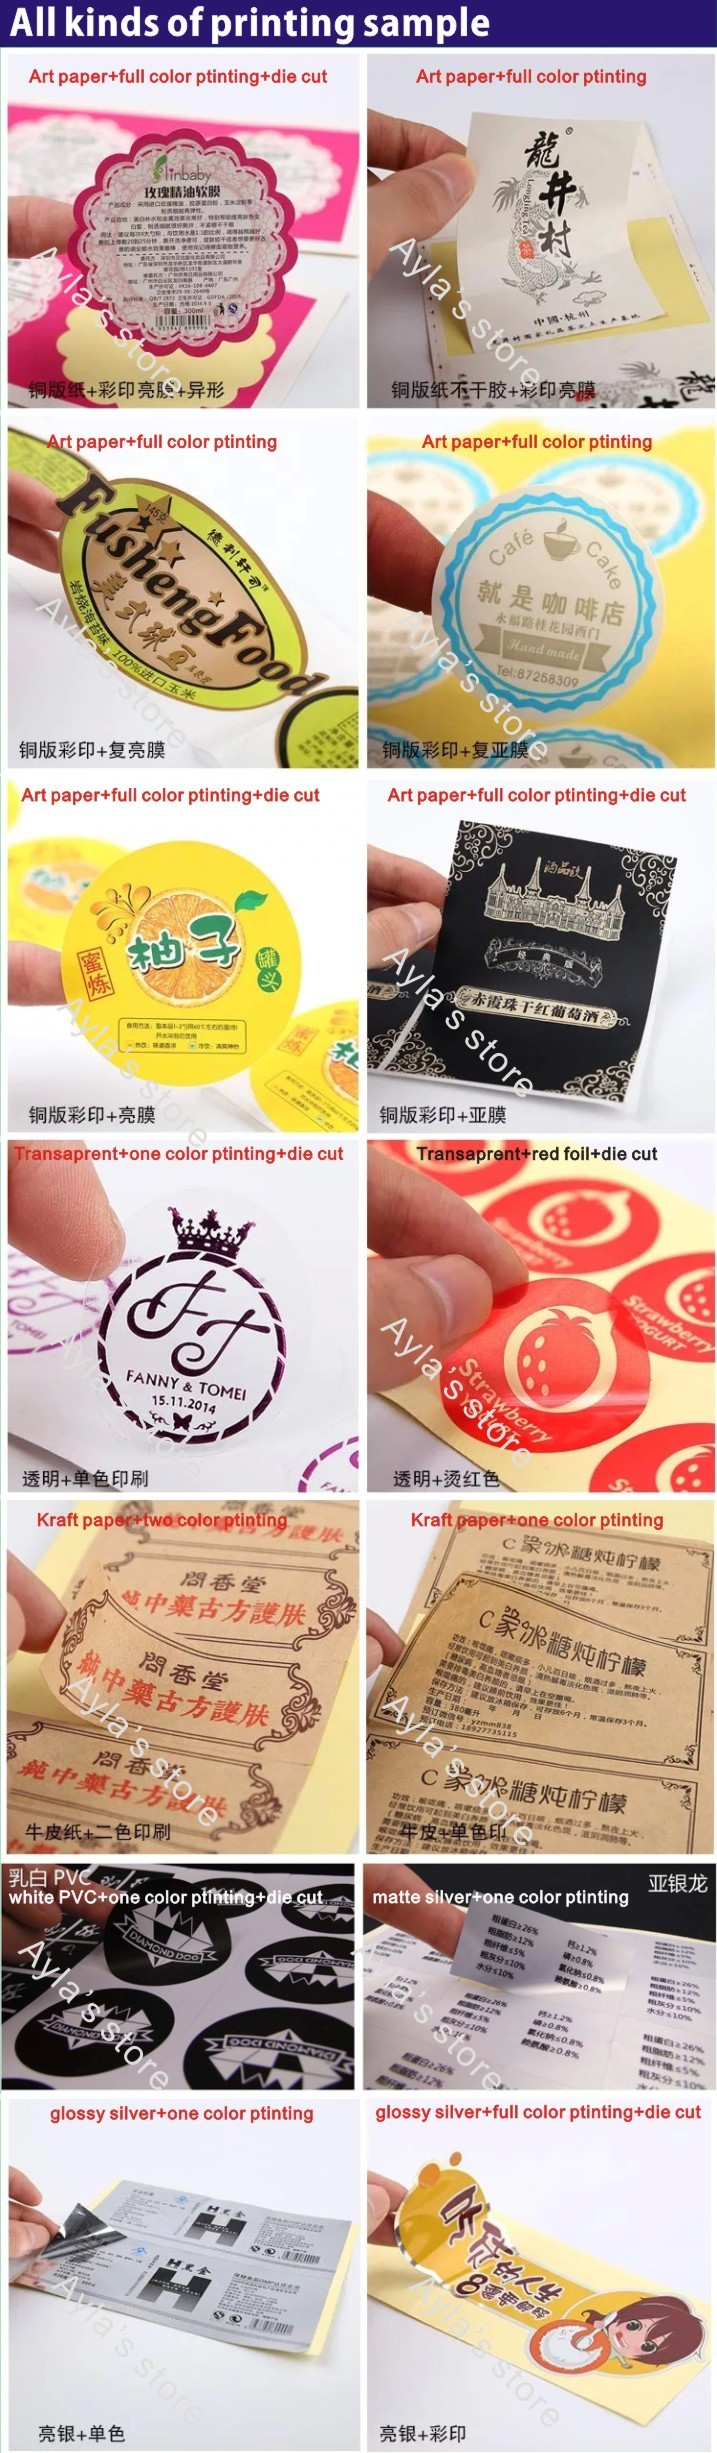 Custom Stickers Labels Printing Coated Art Paper Sticker Print 1000 Circuit Board And Designs Plastic Pvc Vinyl Transparent Clear Adhesive Round Label